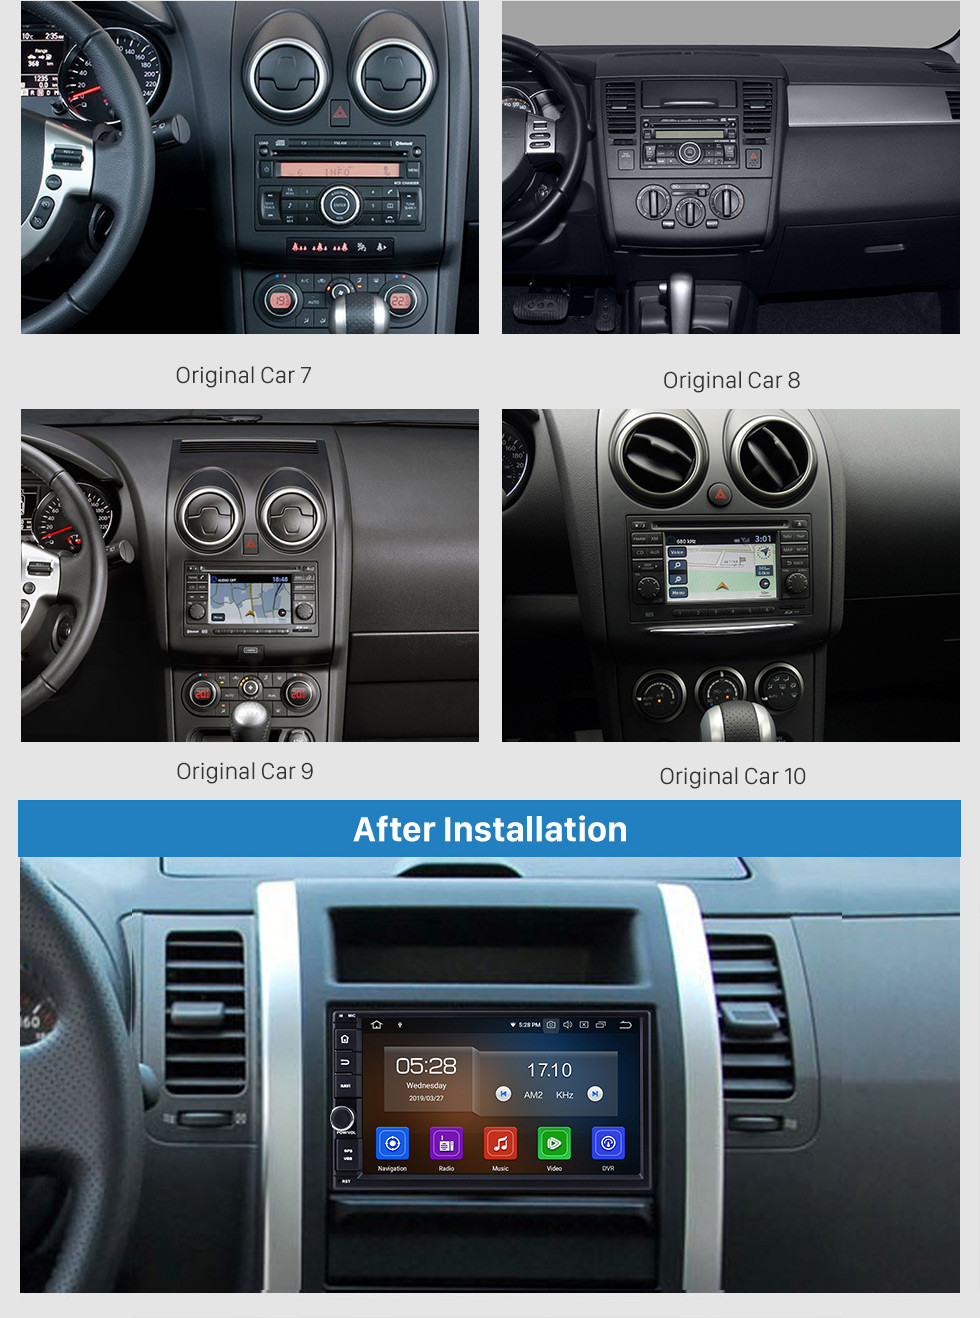 Seicane Android 9.0 2002-2009 Kia sorento Radio Replacement  Navigation System  Touch Screen Bluetooth MP3 Mirror Link OBD2 WiFi CD DVD Player Steering Wheel Control